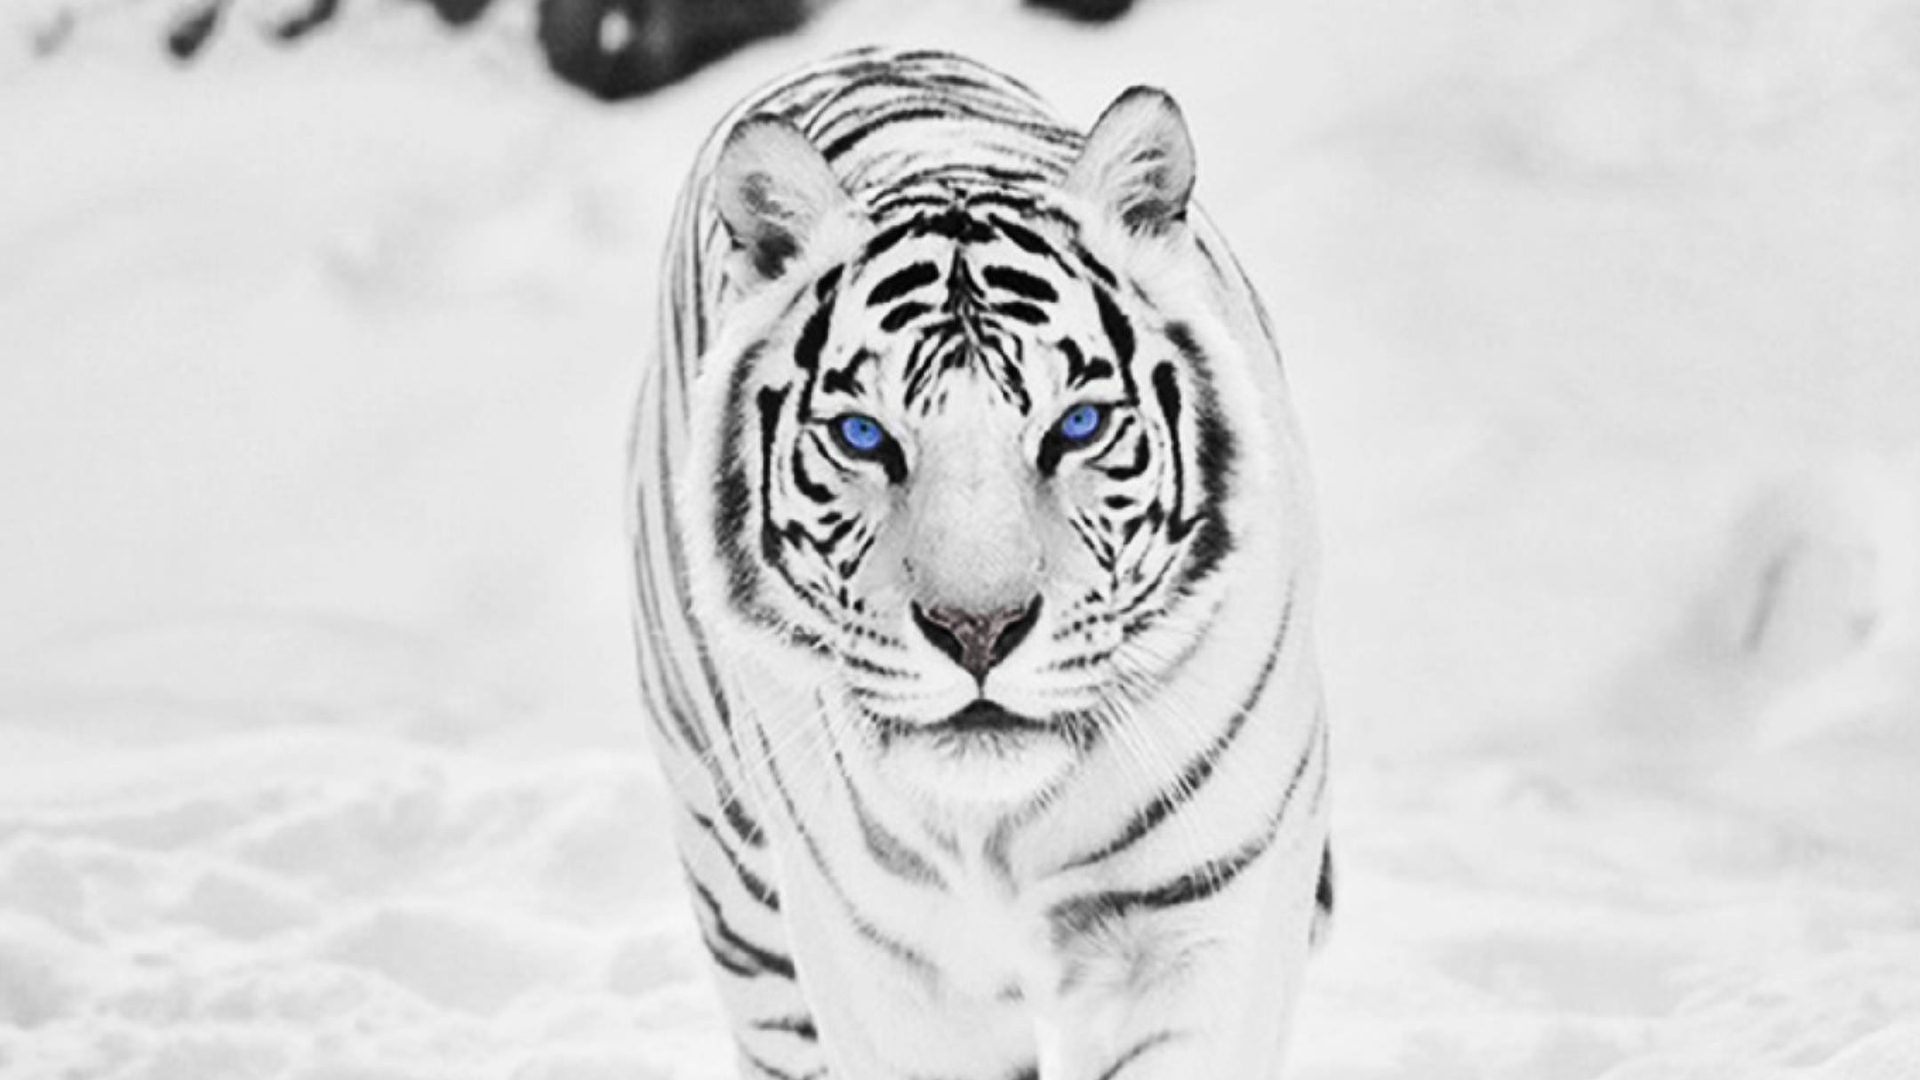 free pics of white tigers | high resolution wild animal white tiger